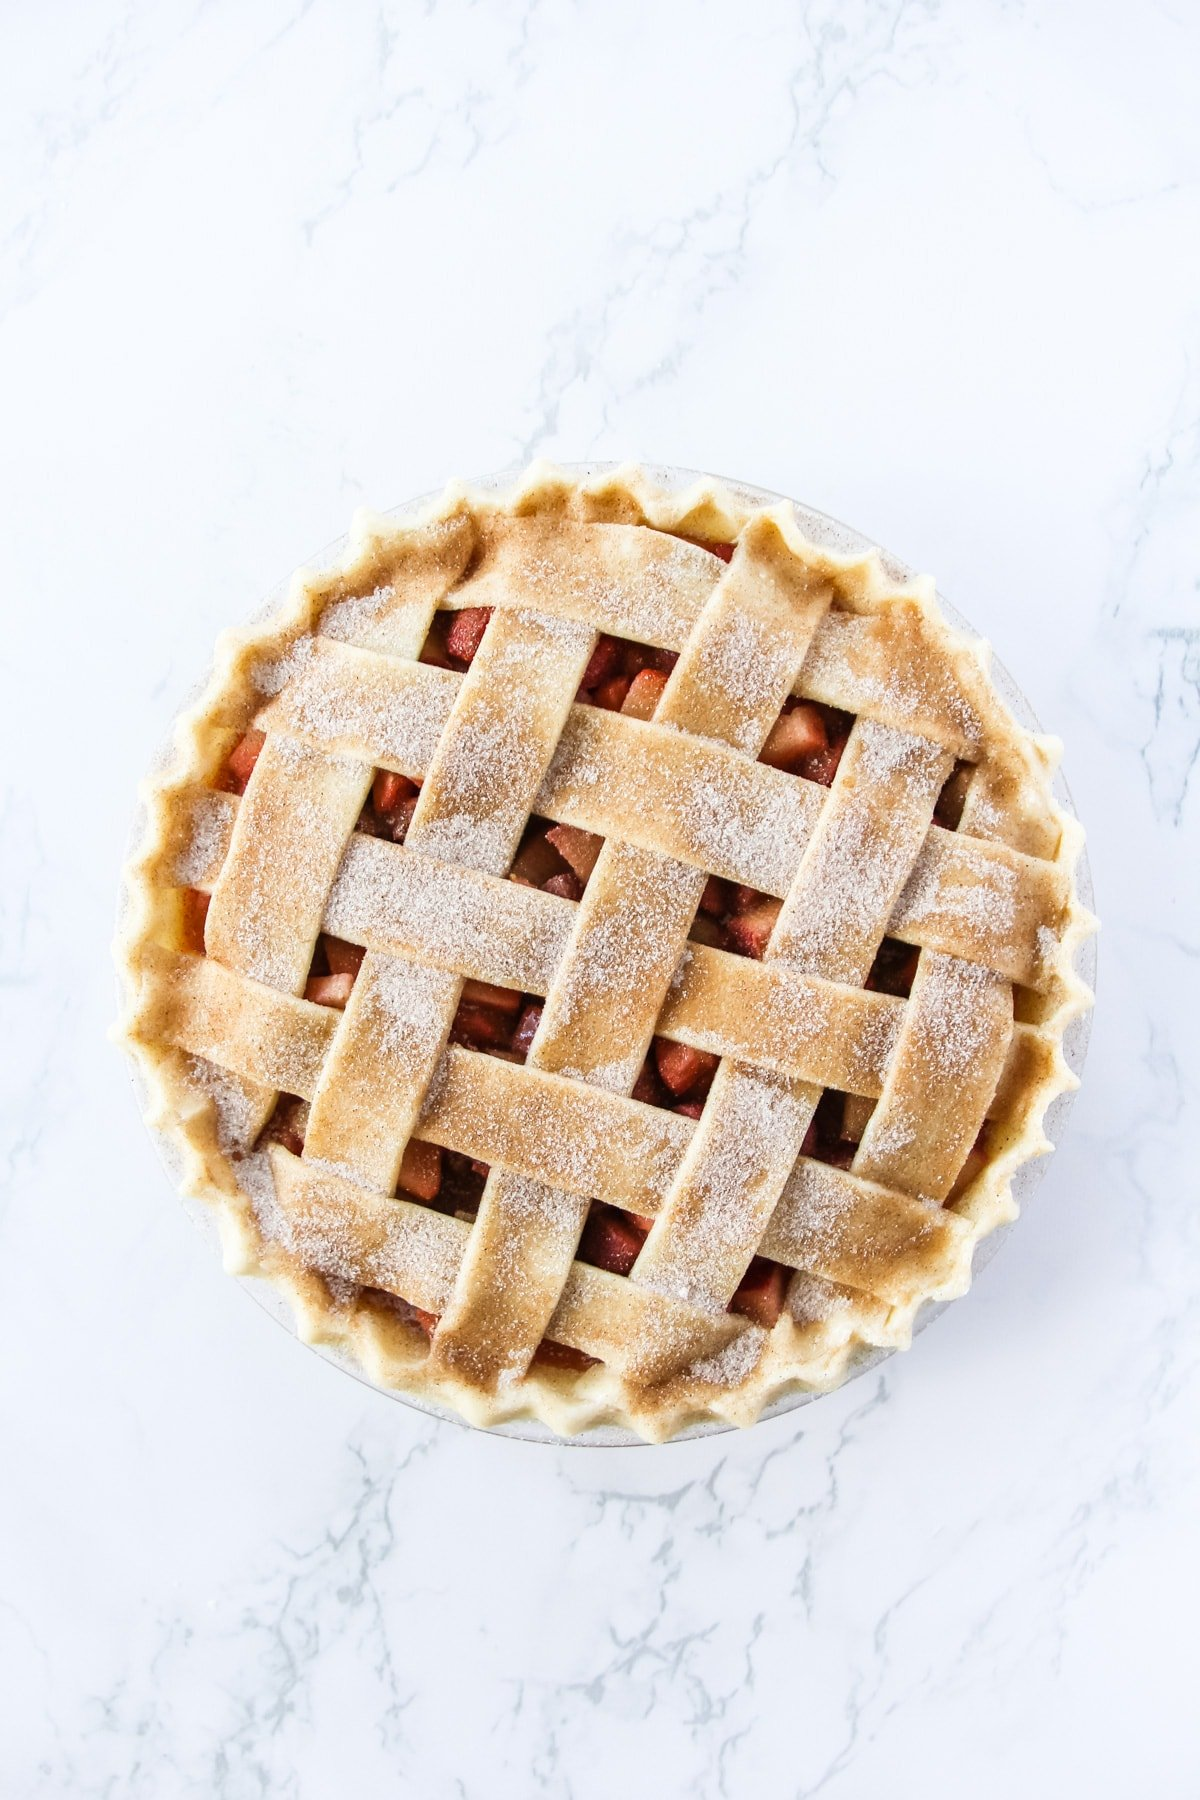 a top down view of an unbaked pie with a lattice crust. the crust is sprinkled with cinnamon and sugar. the background is a marble table top